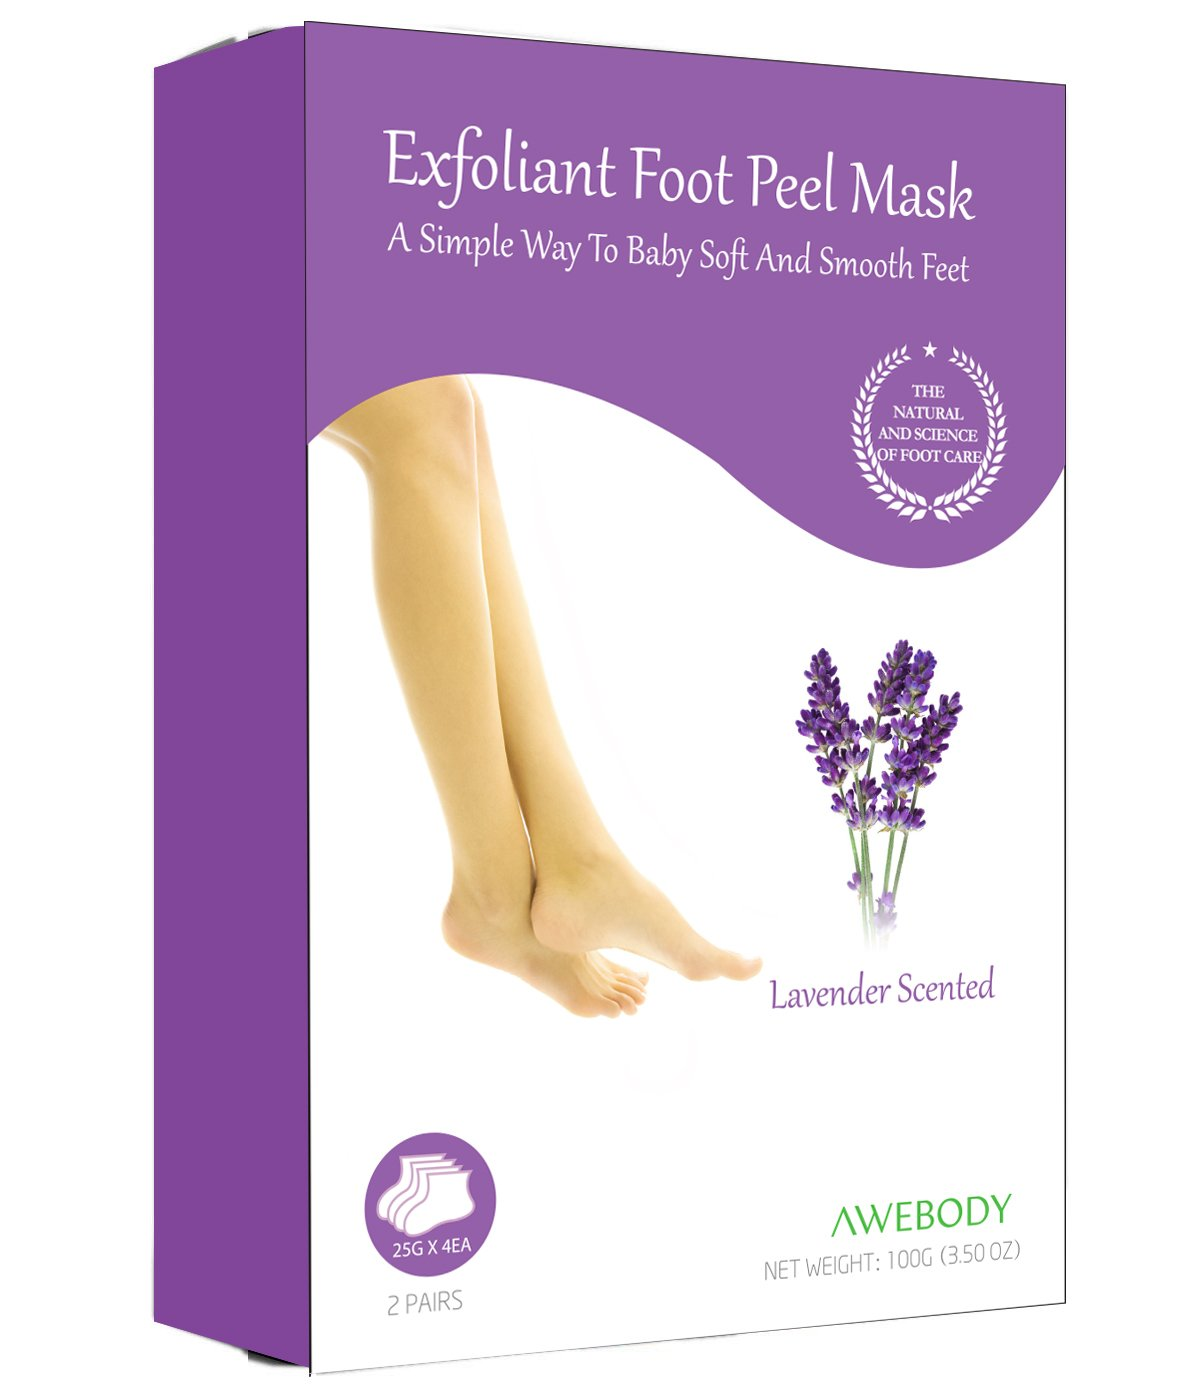 2 Pairs Foot Peel Mask, Soft Touch Foot Peel Mask Exfoliating, Remove Dead Skin & Calluses Naturally, Get Smooth, Soft foot For Men & Wome, Best Soft Foot Peel Mask for 2018